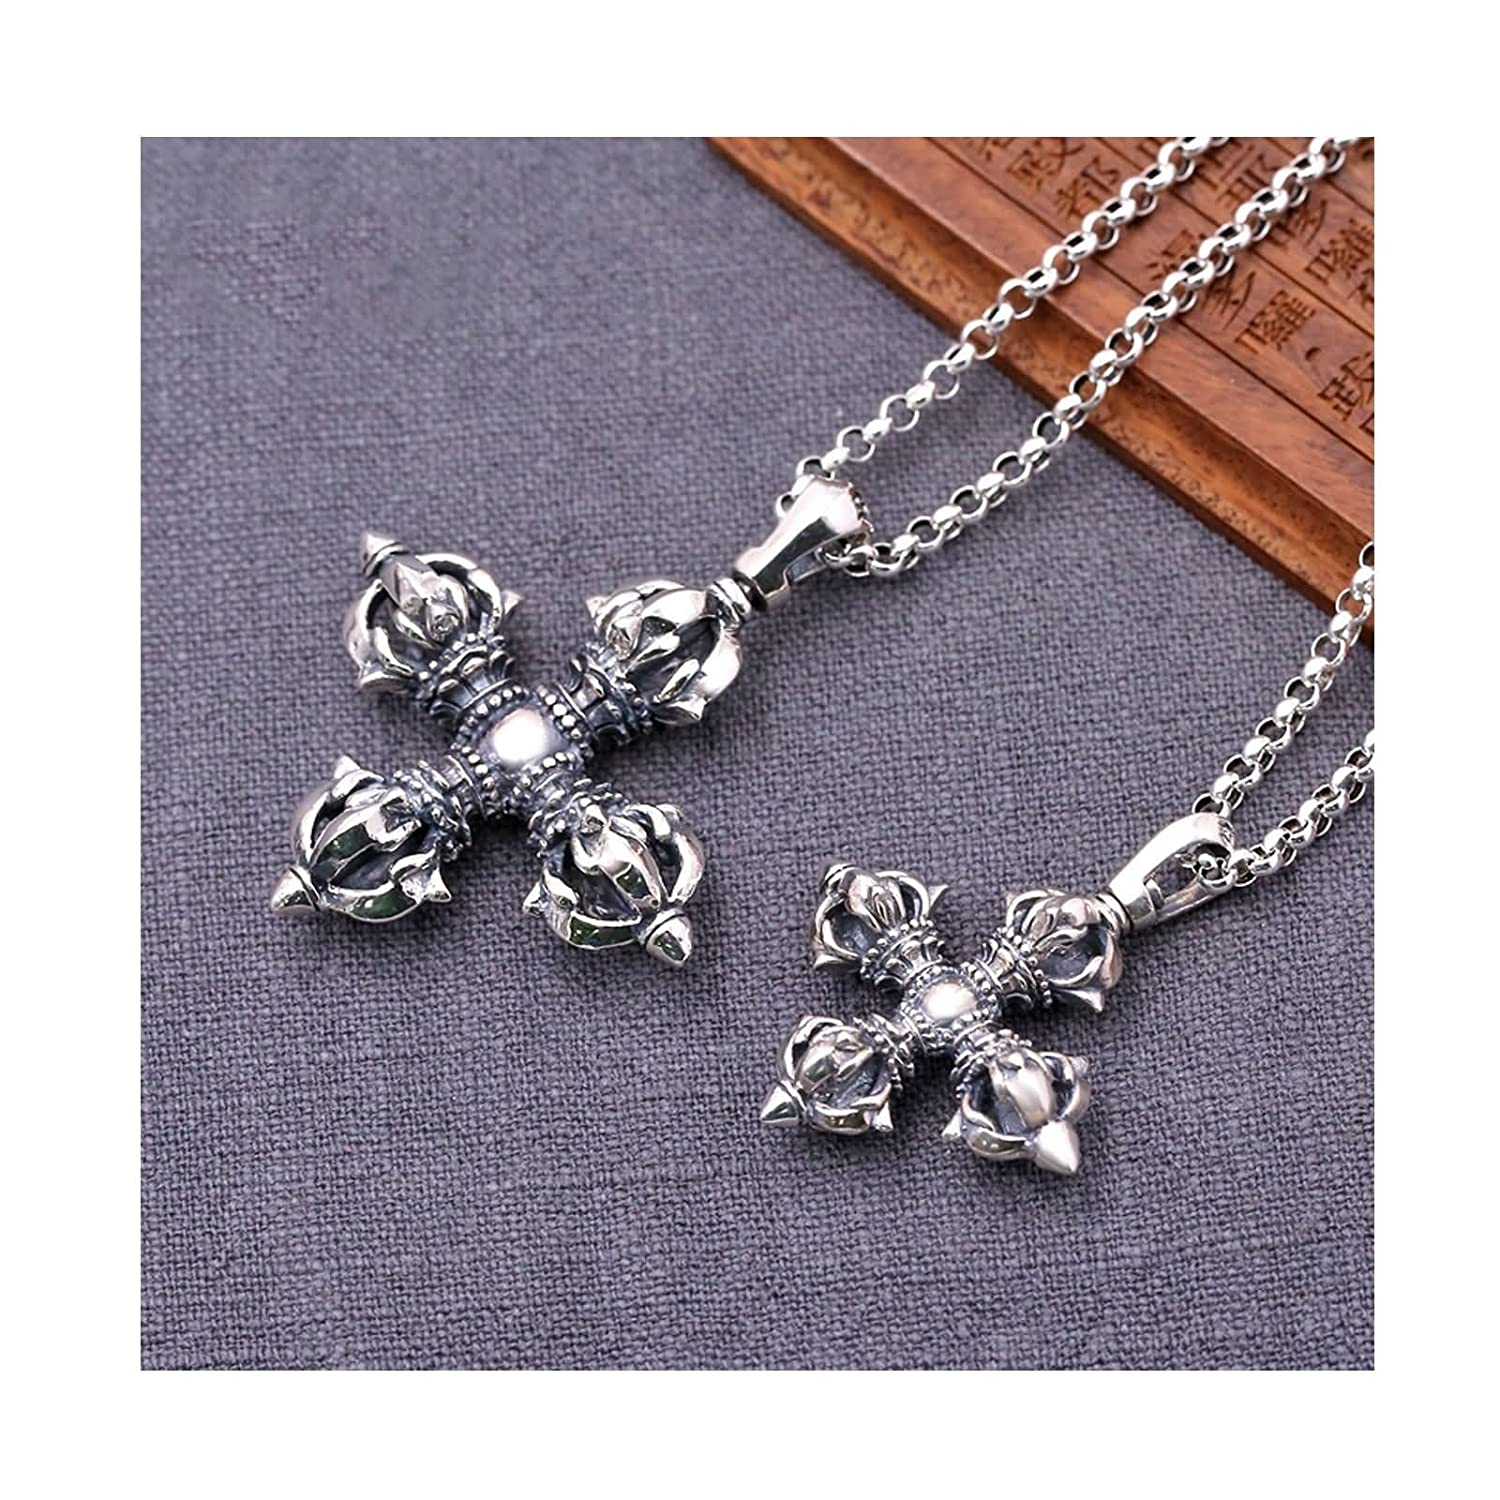 KnSam Mens Womens Sterling Silver Necklace with Pendant Vintage Retro Chain Vajra Cross